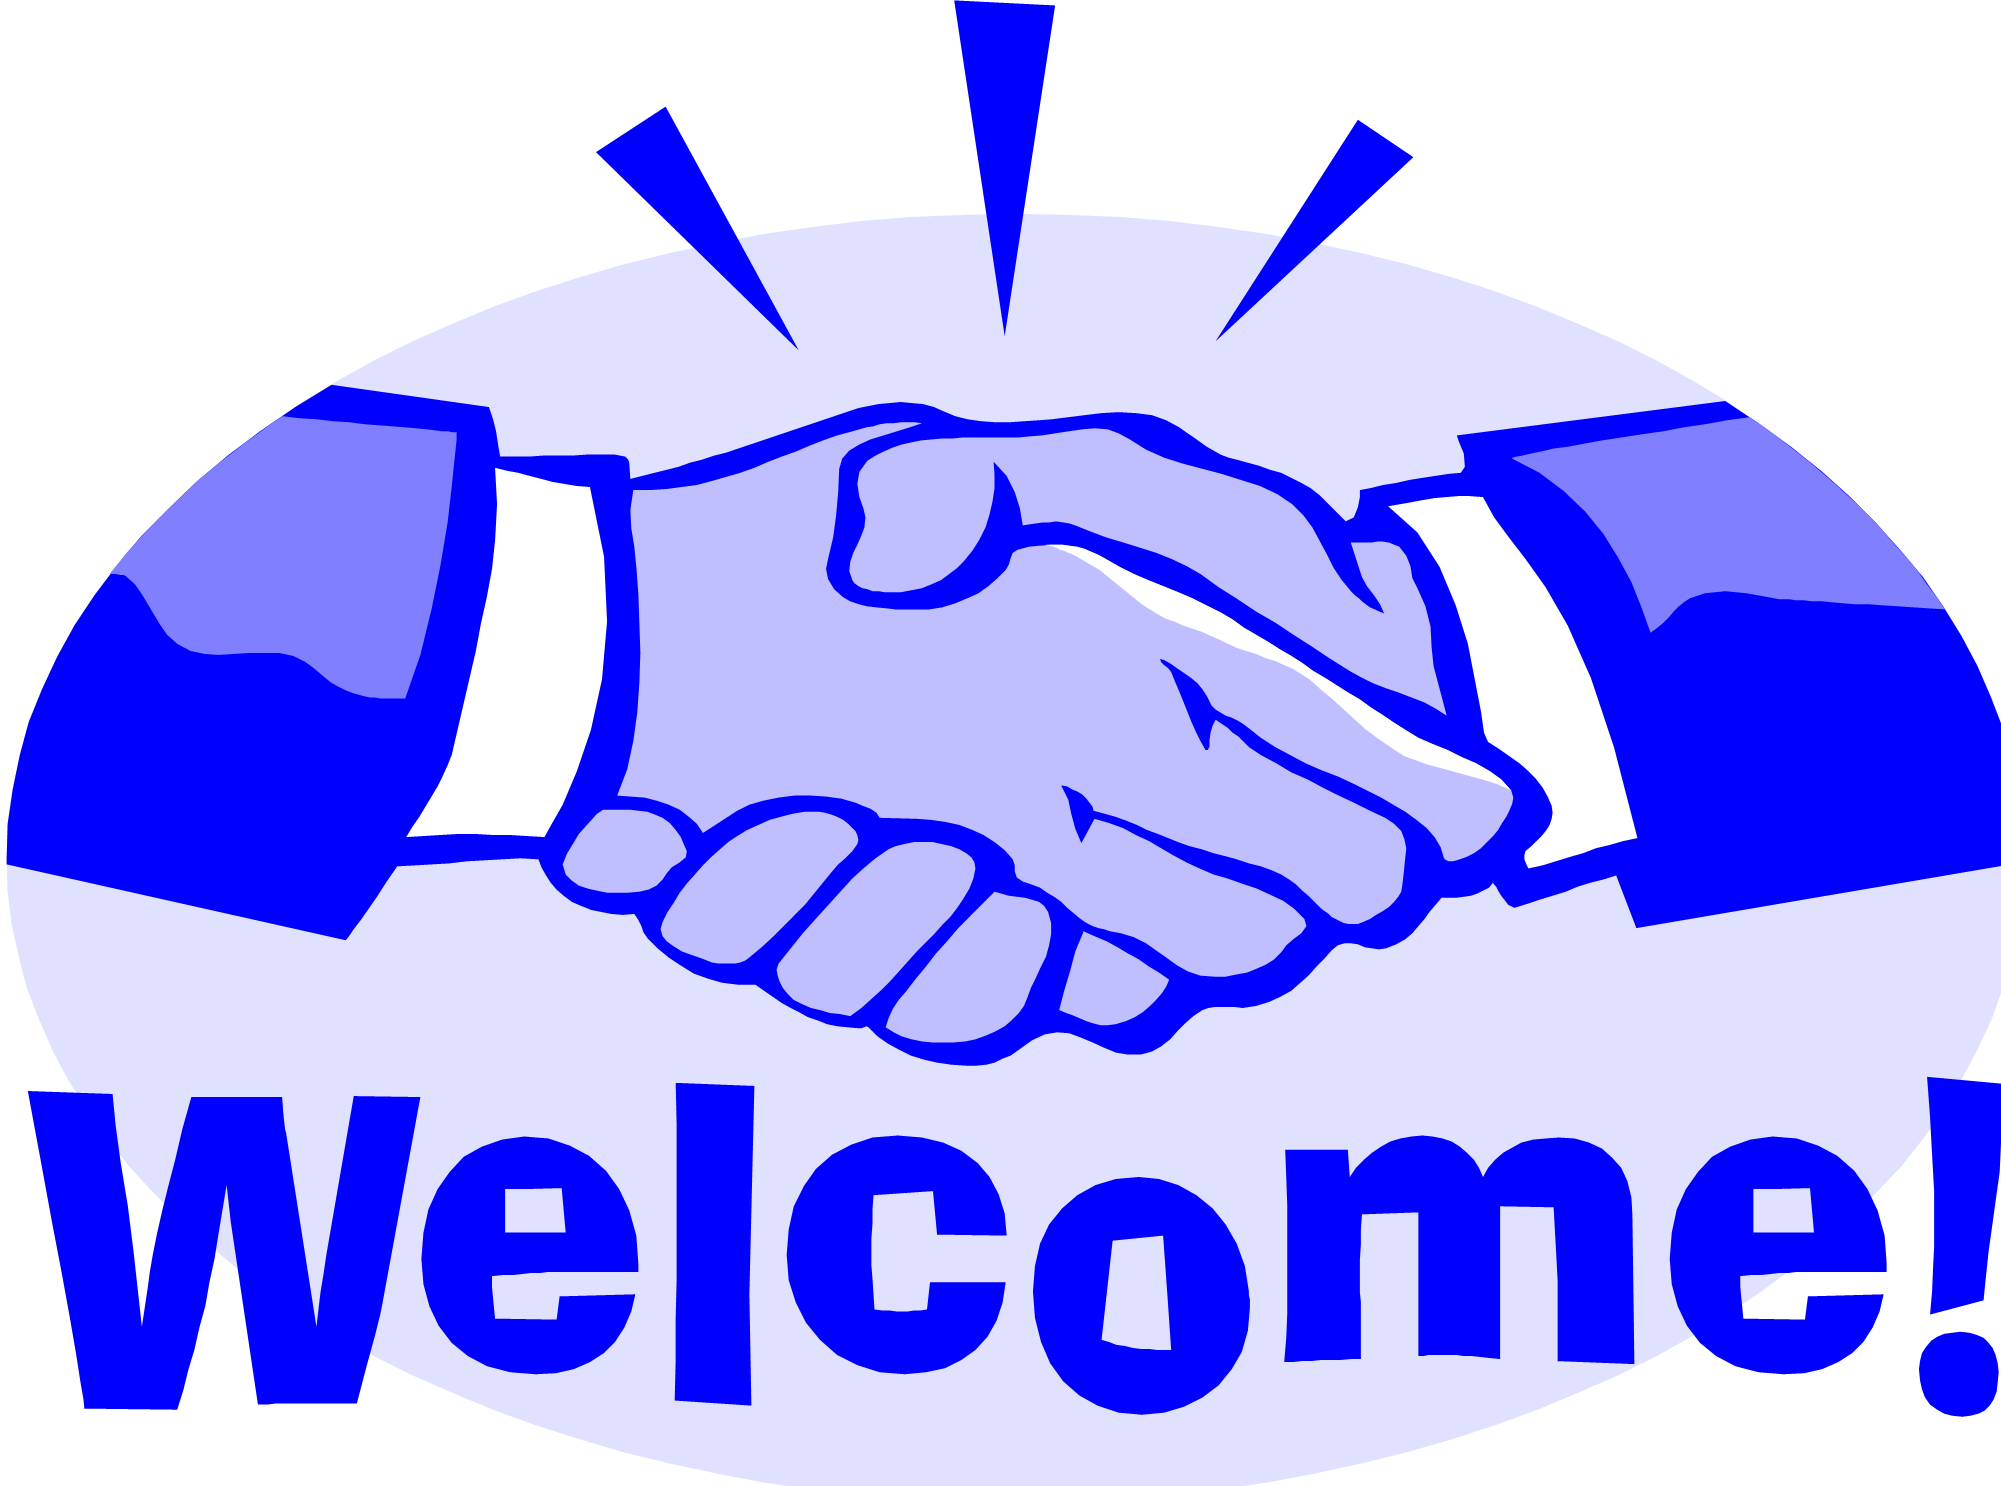 Facebook clipart share. Welcome handshake image on